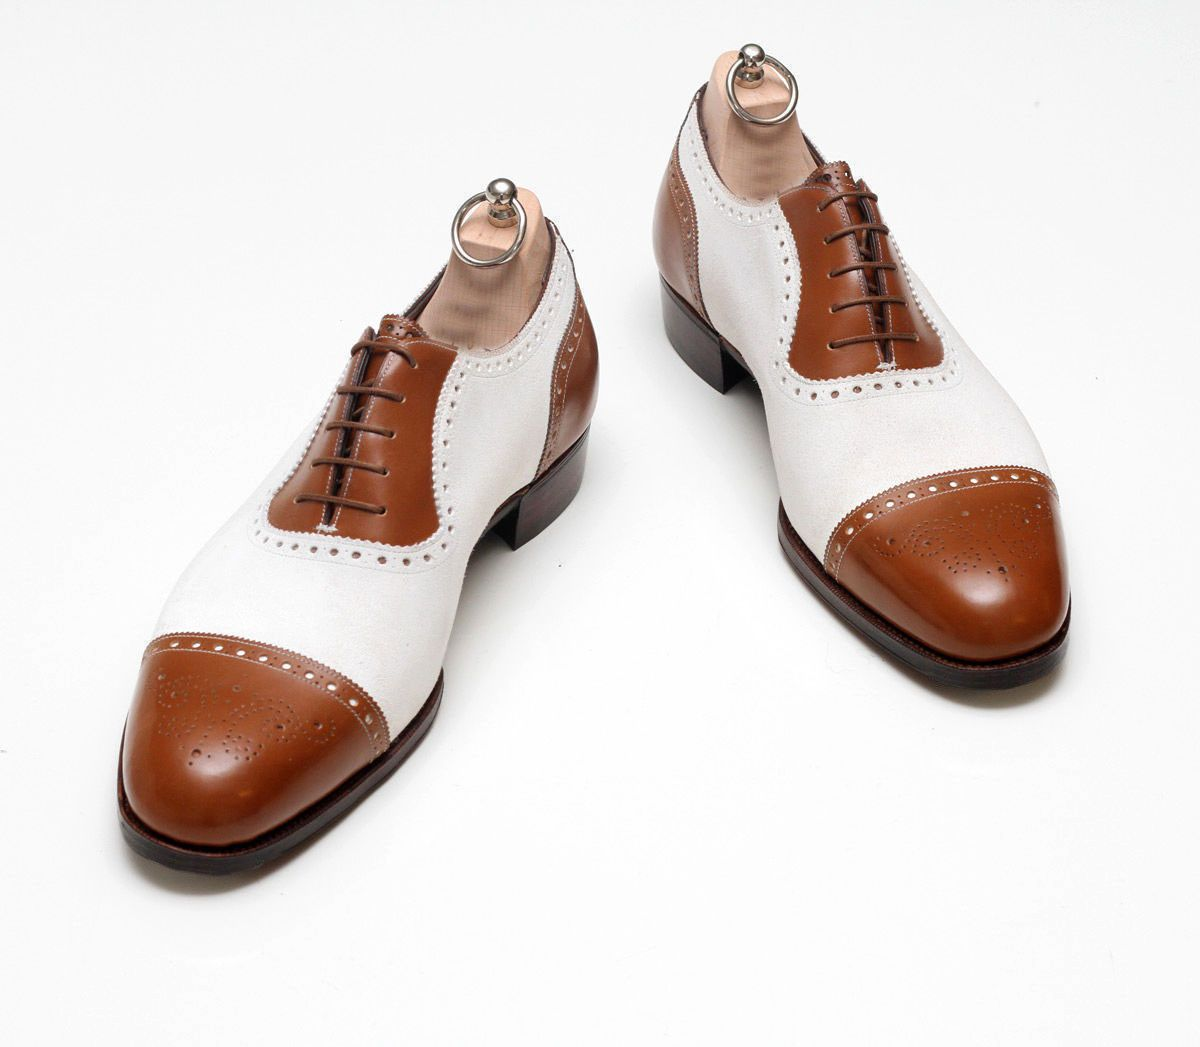 Handmade Mens Two Tone Formal Shoes Me Brown And White Spectator Shoes Spectator Shoes Handmade Dress Shoes Formal Shoes For Men [ 1047 x 1200 Pixel ]